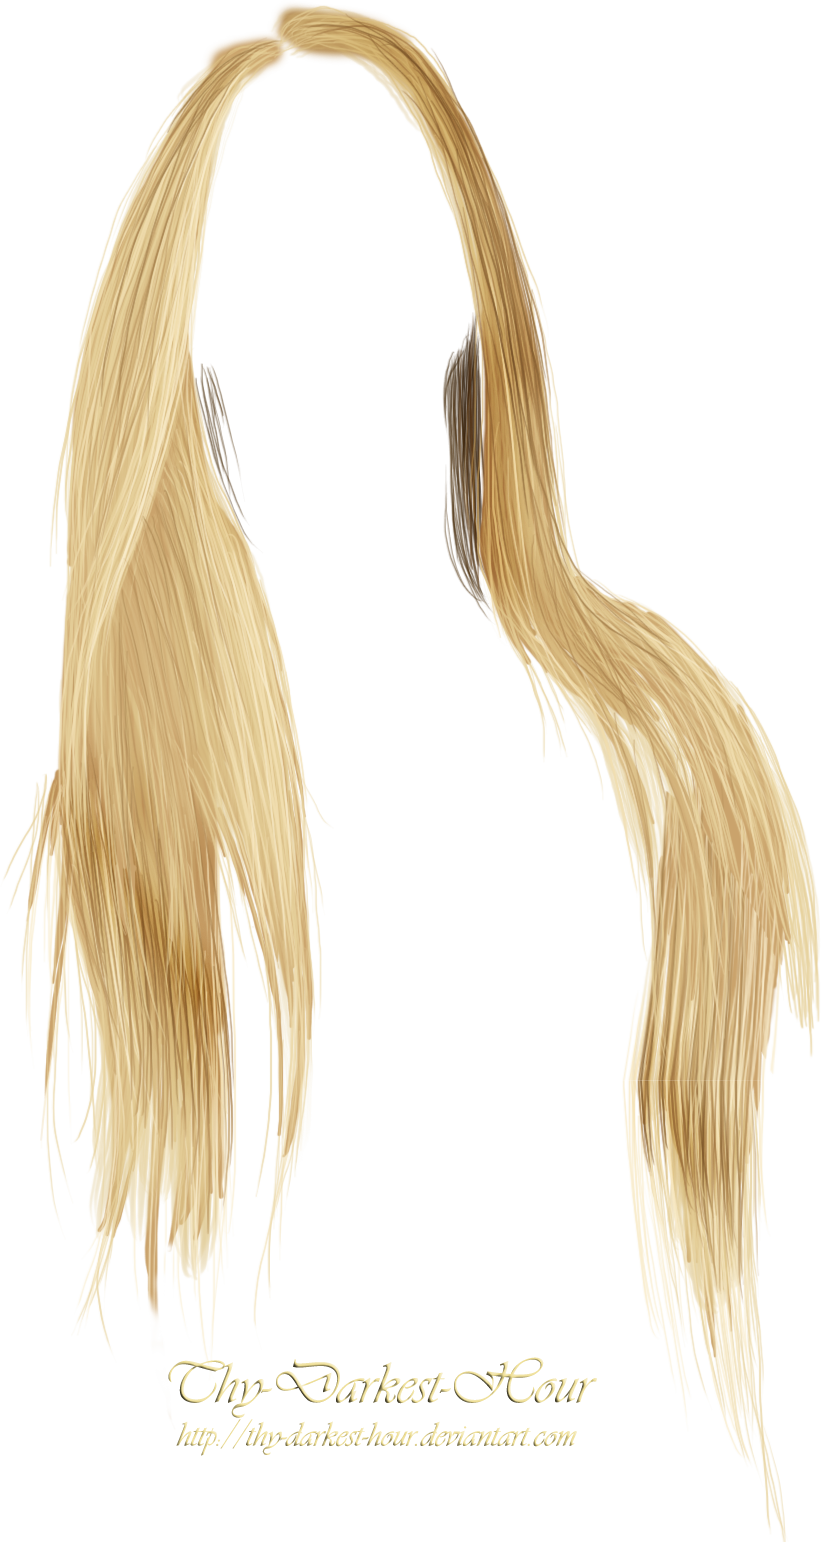 Hair strand png. Favourites by galdimi on